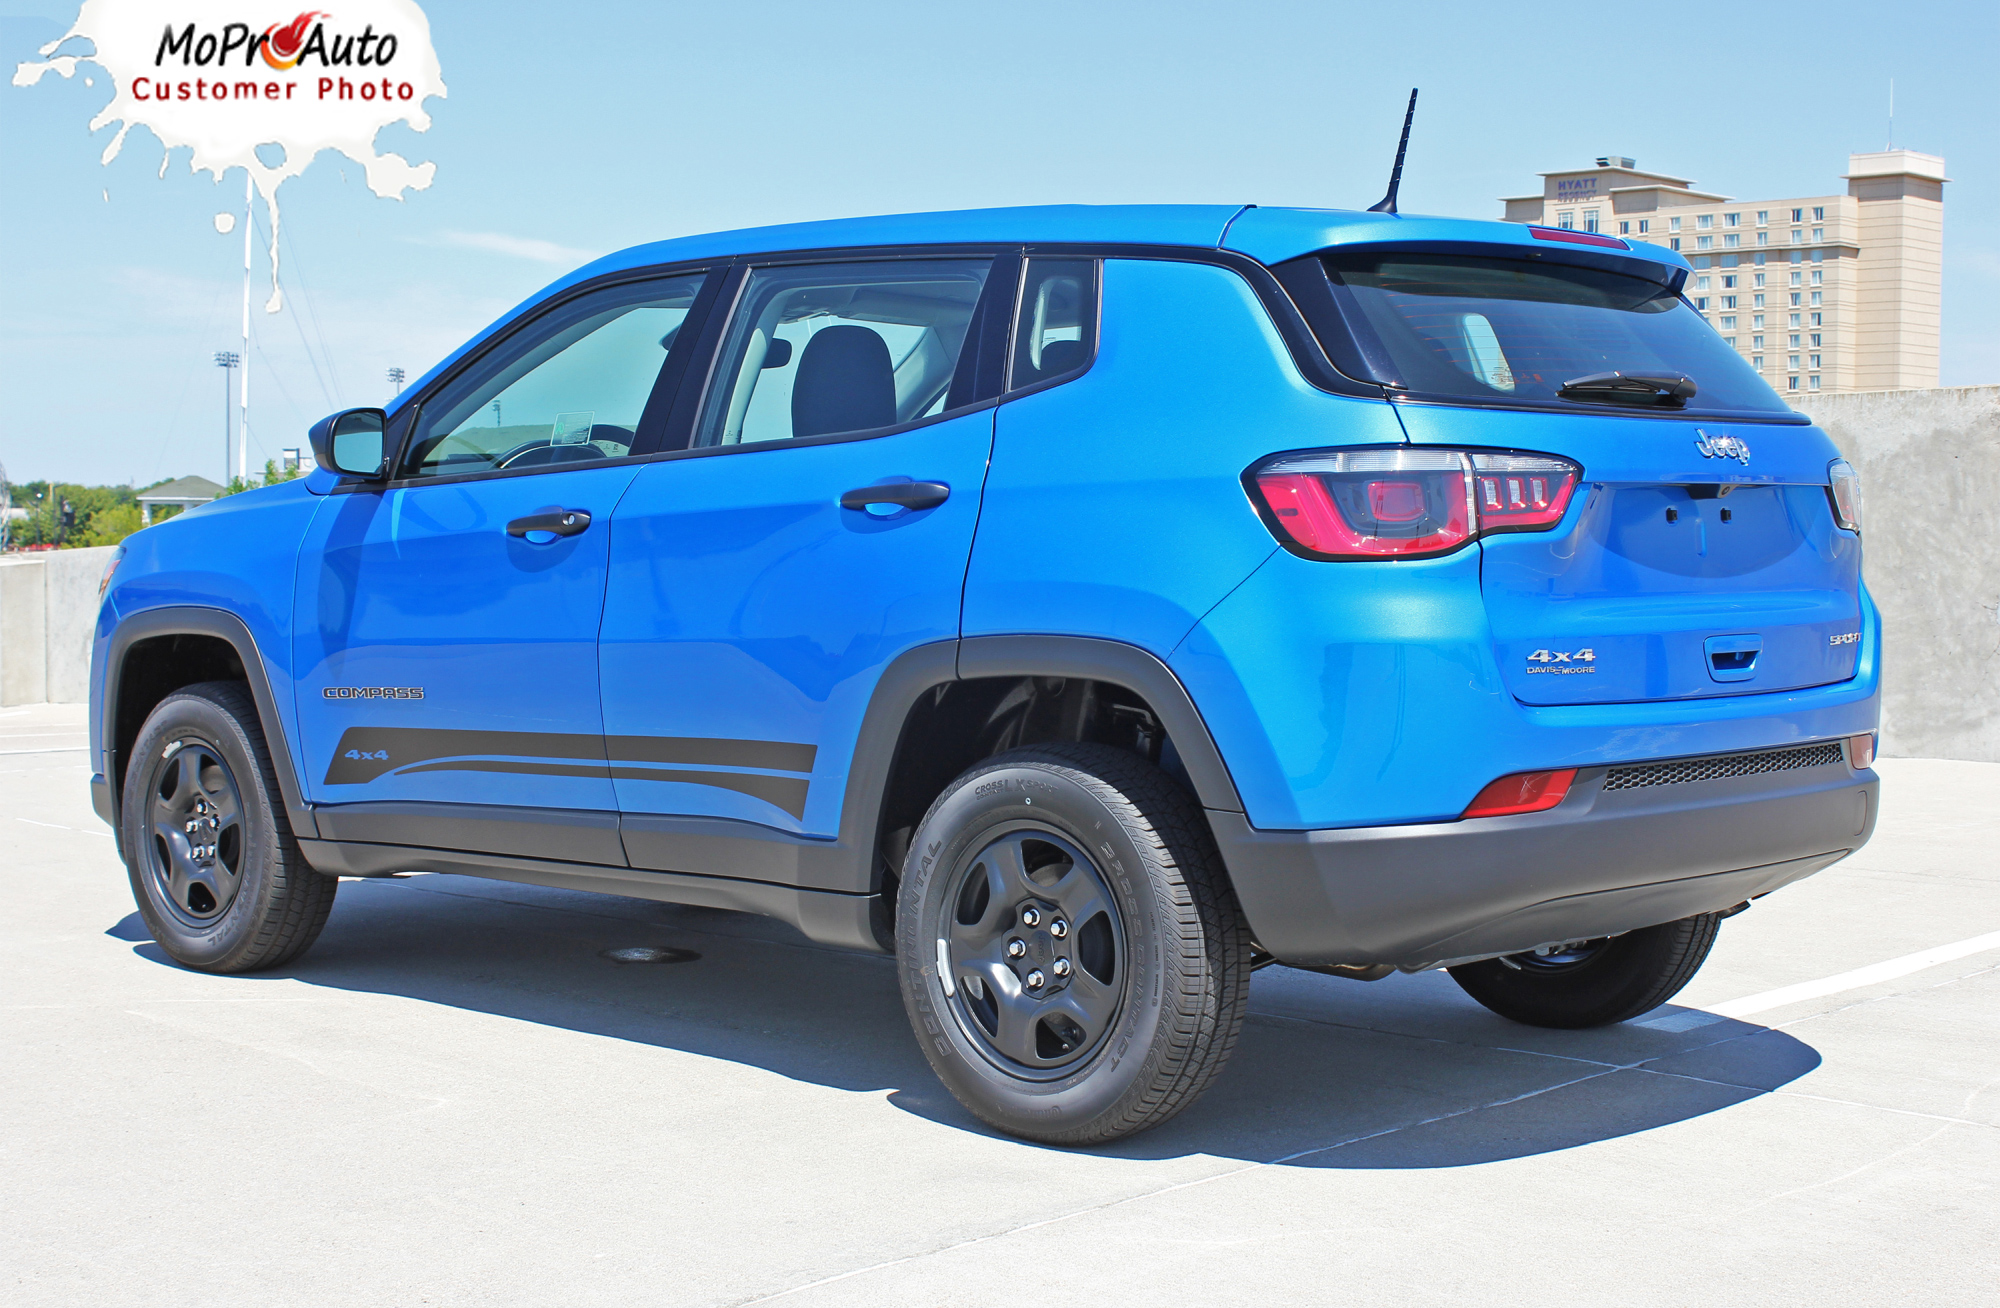 2017, 2018, 2019, 2020 Jeep Compass Vinyl Graphics Decals Stripes | Customer Photo Course